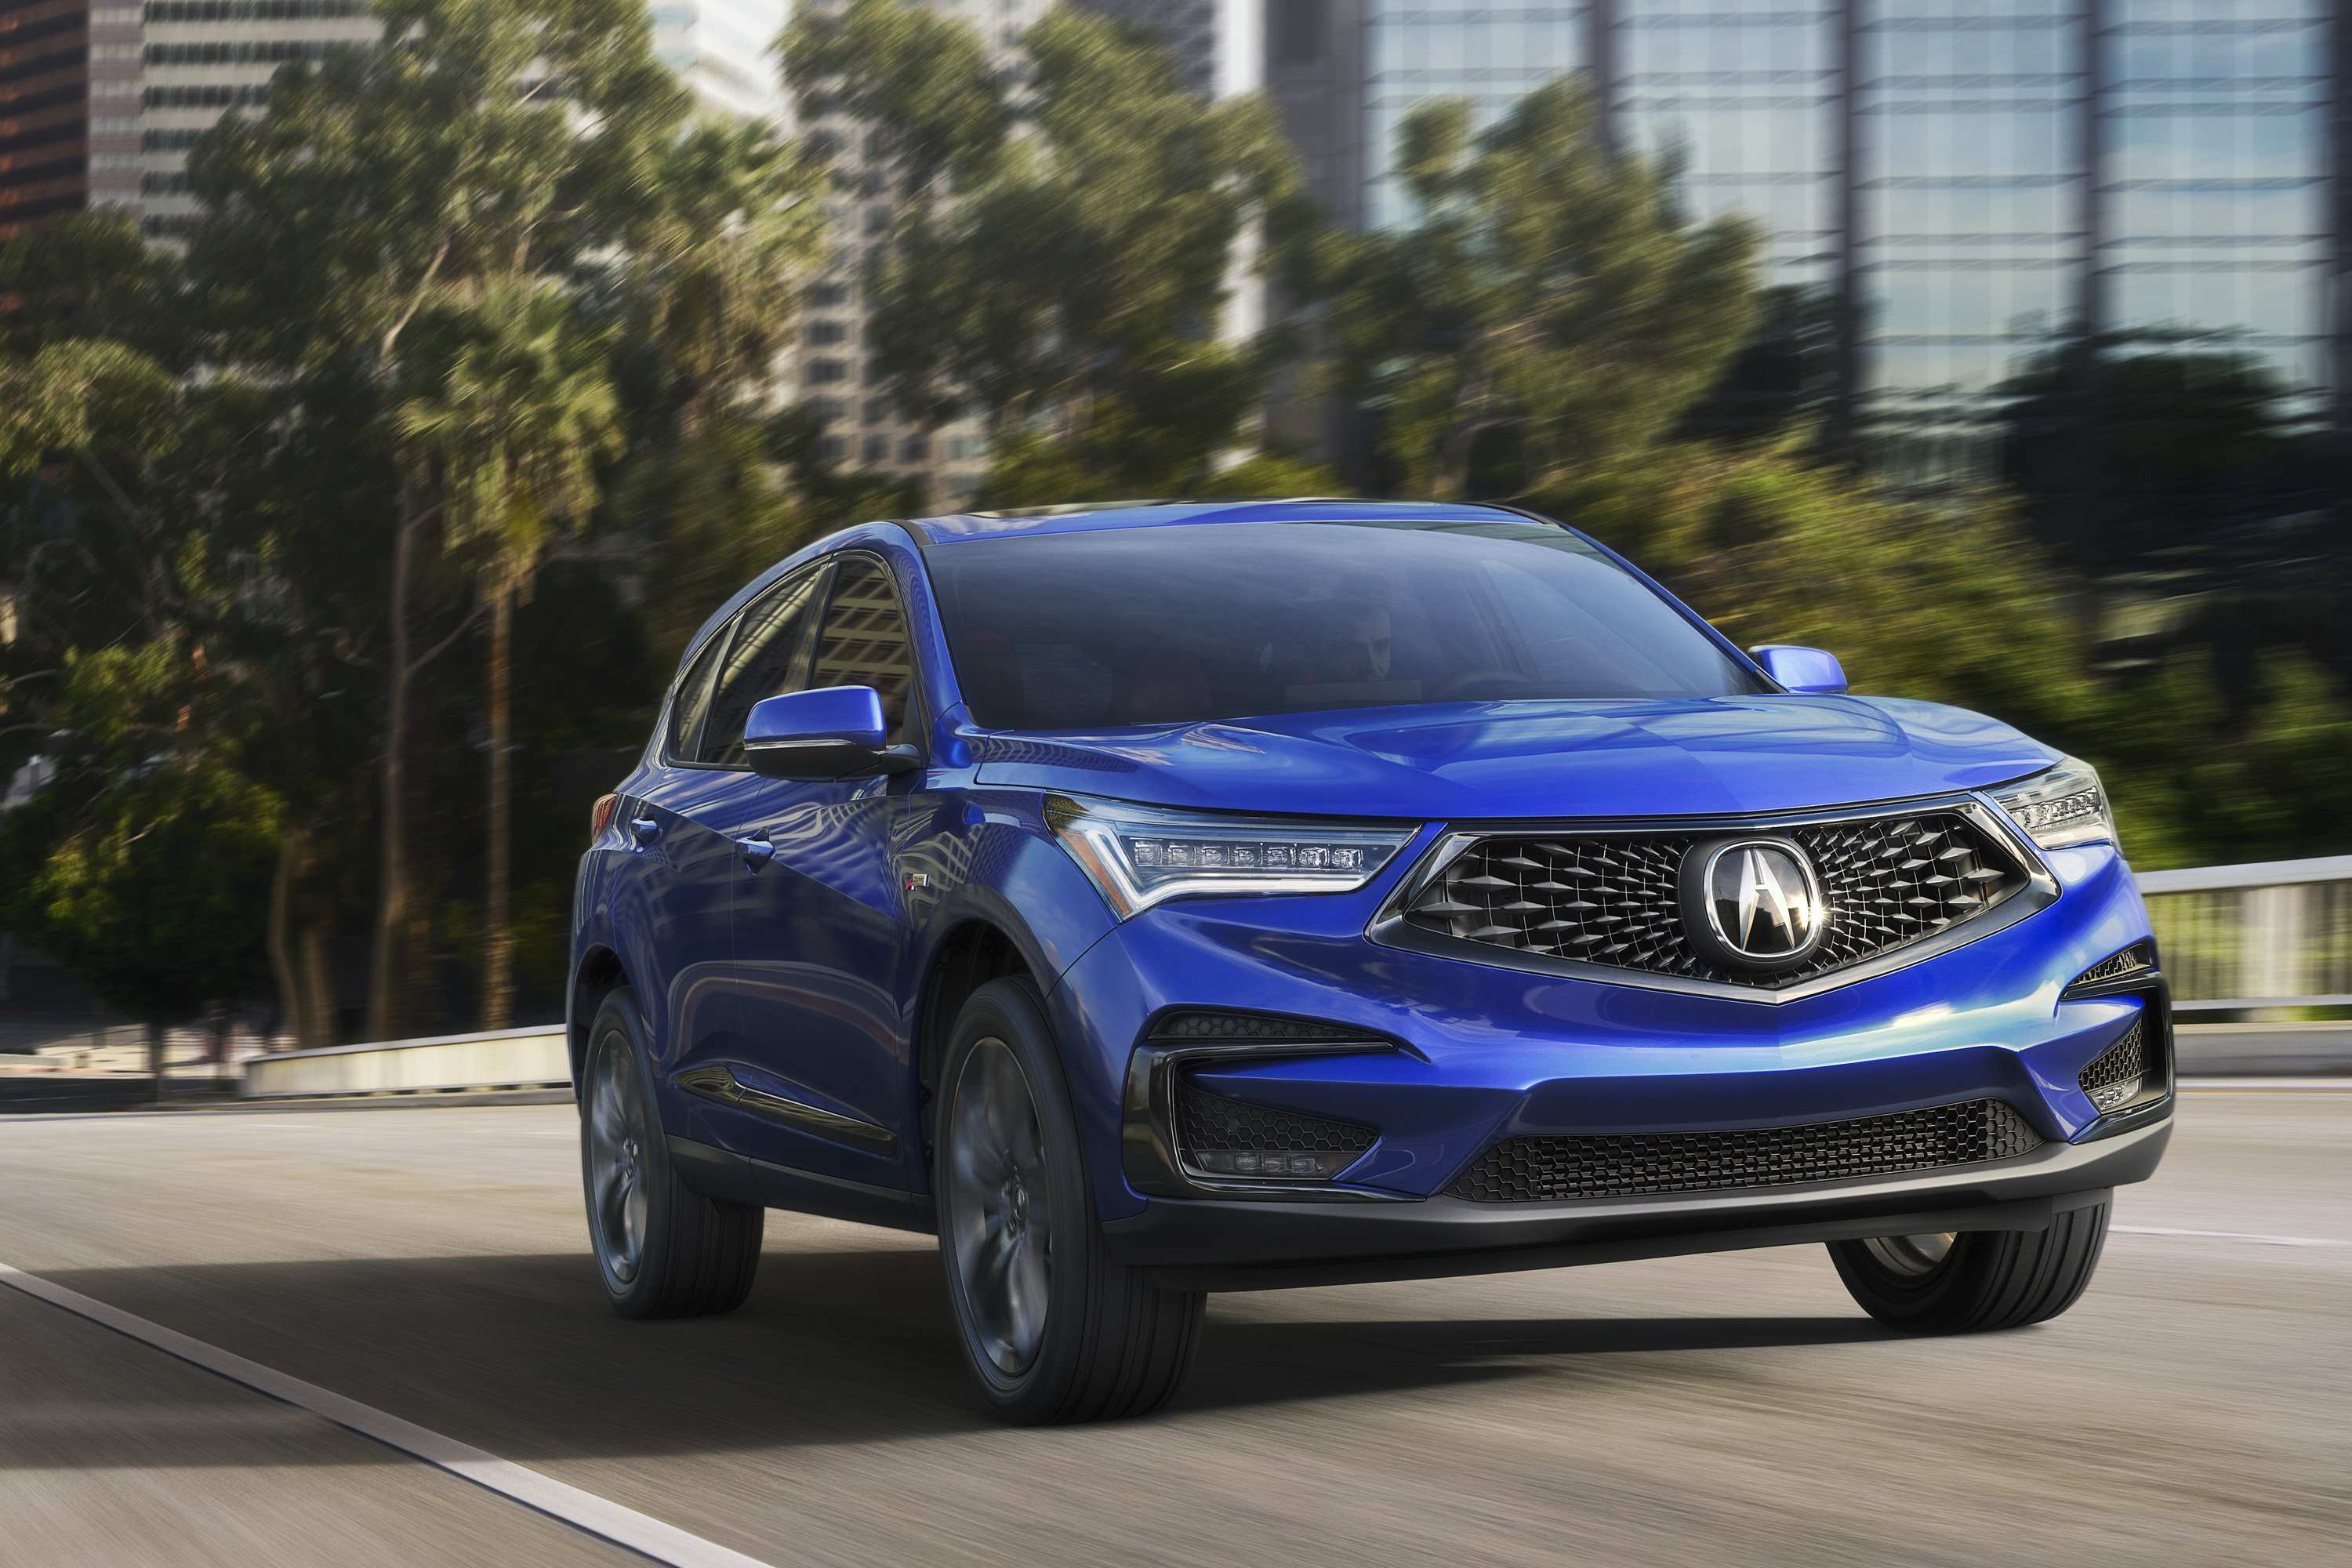 51 Gallery of The 2019 Acura Rdx Quarter Mile Price And Review Images for The 2019 Acura Rdx Quarter Mile Price And Review